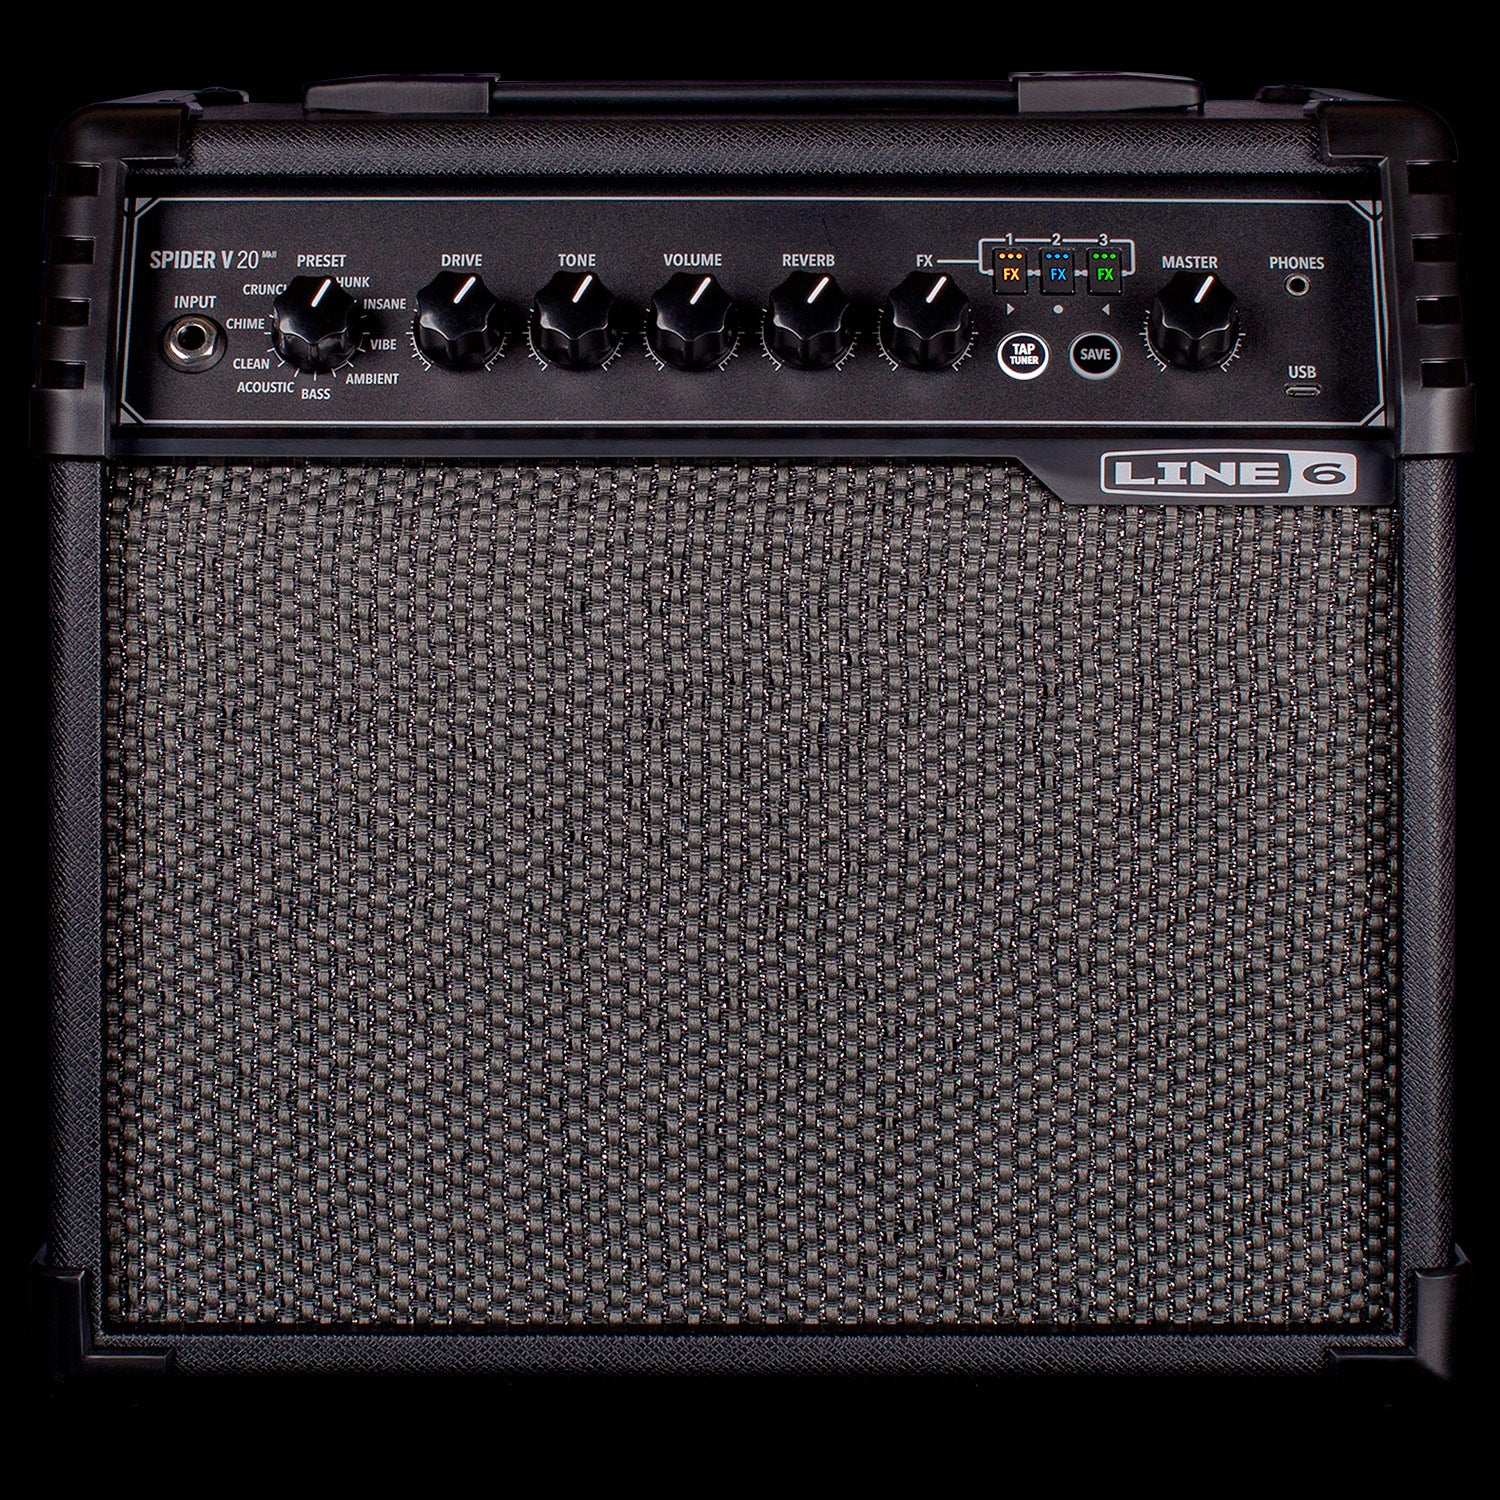 Line 6 Spider V 20 MkII 1X8 20 Watt Guitar Modeling Combo Amp with Effects